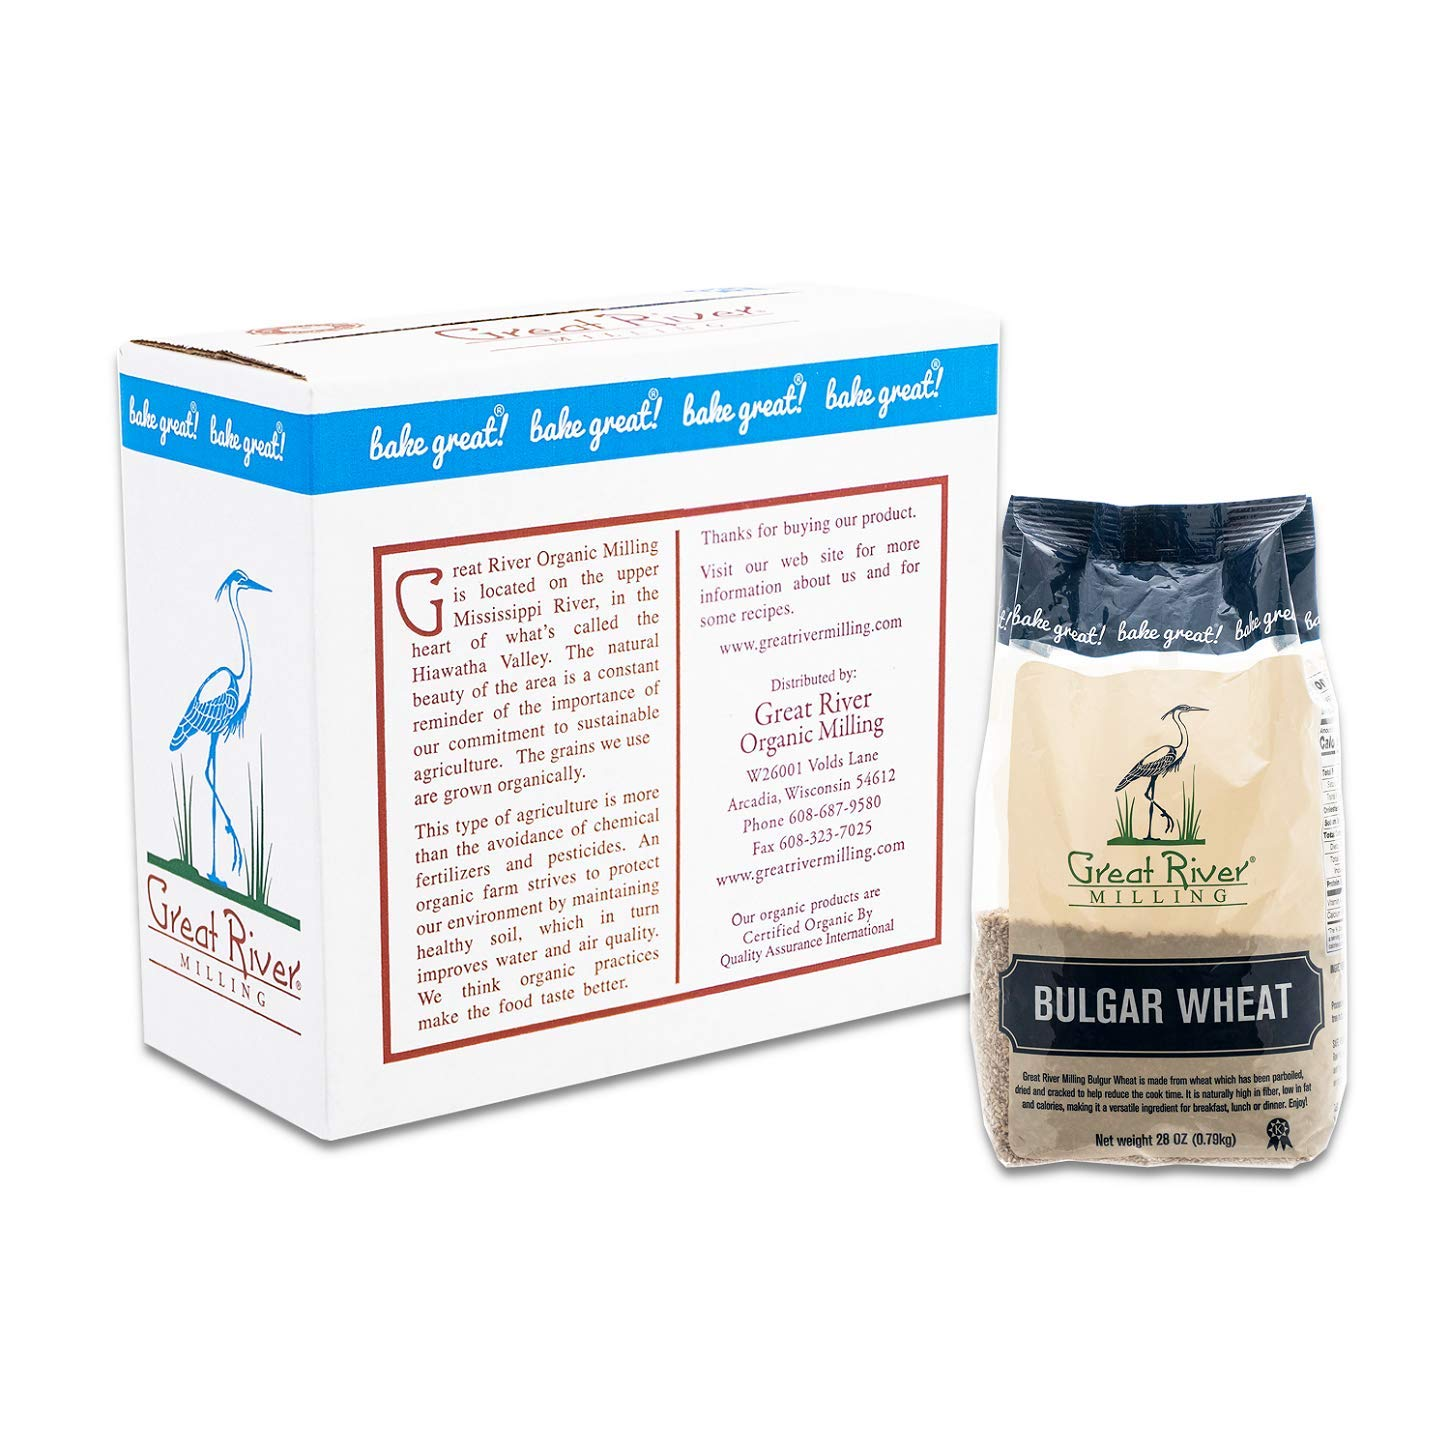 Great River Milling, Bulgar Wheat, Non-Organic, 28 Ounces (Pack of 4): Amazon.com: Grocery & Gourmet Food